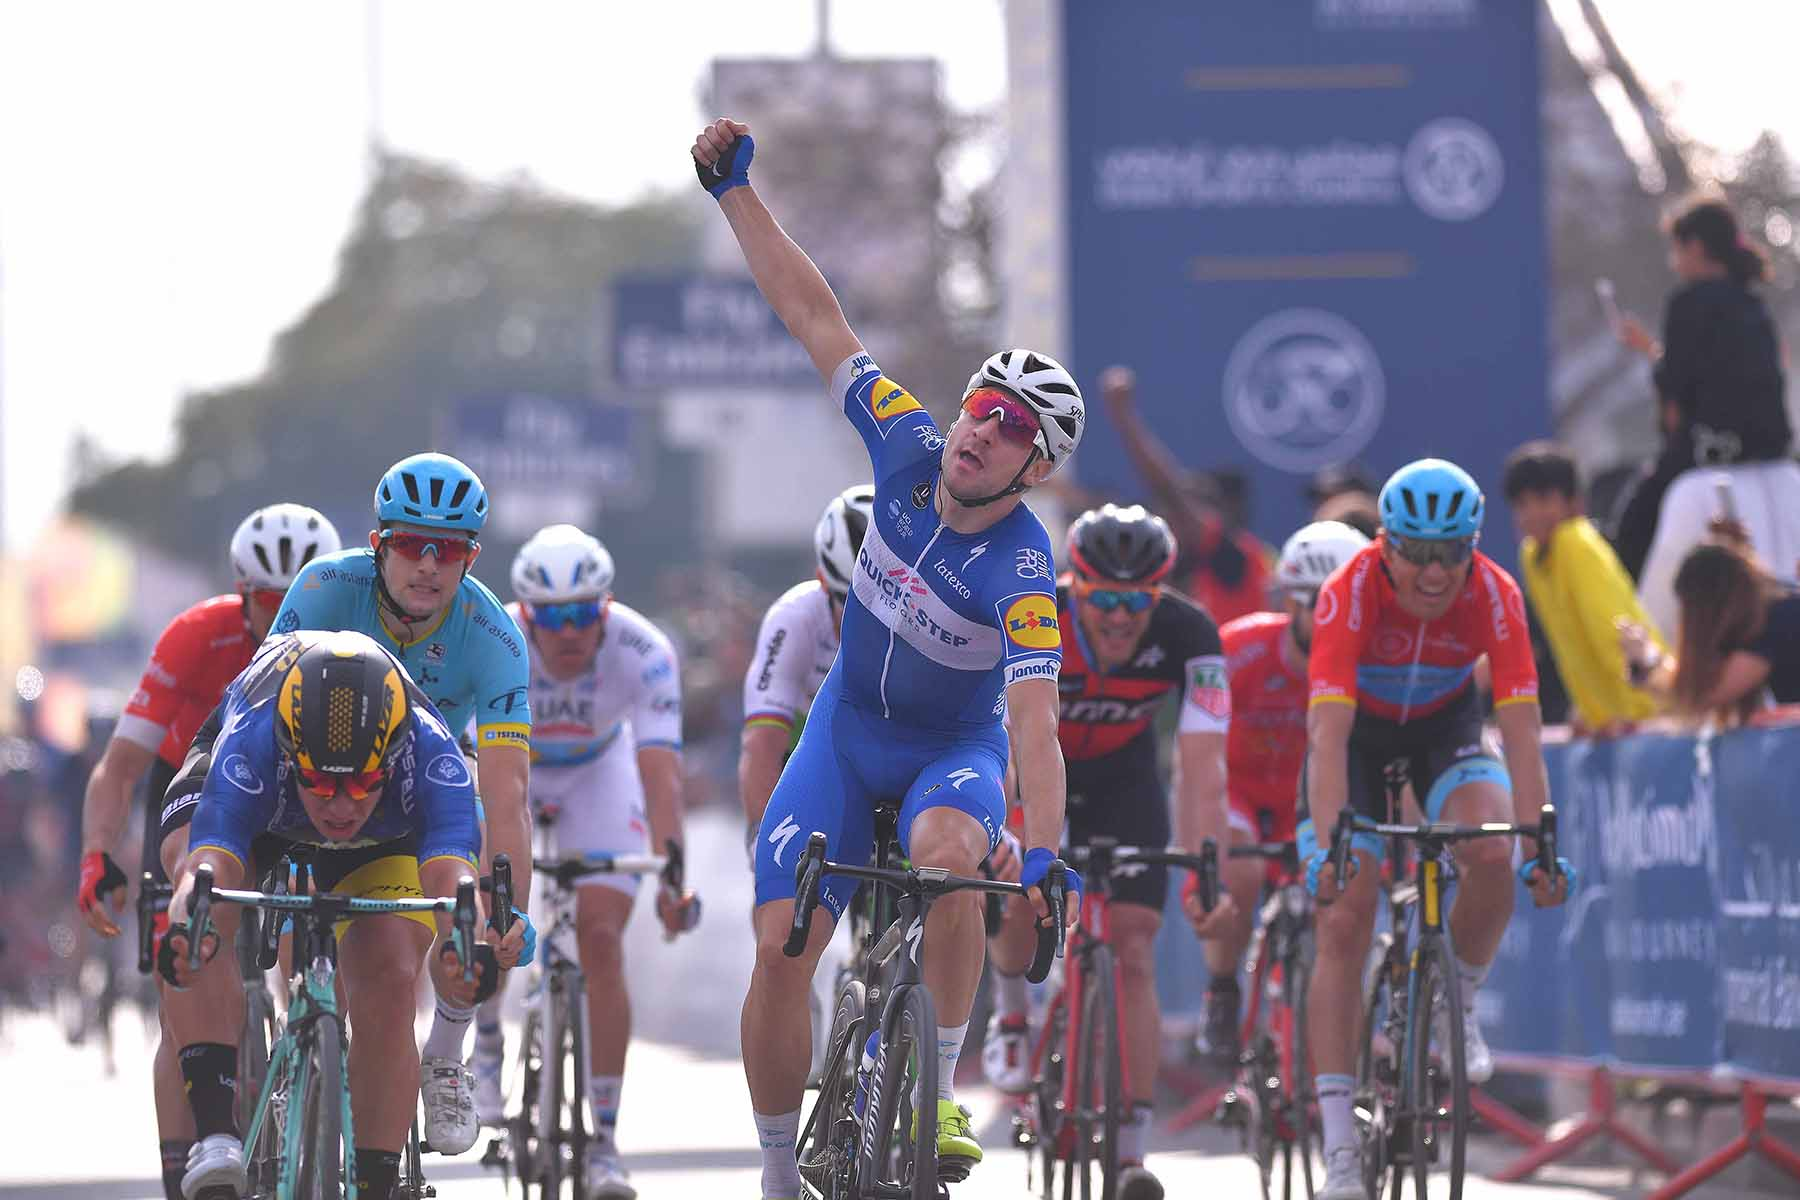 Cycling: 5th Tour Dubai 2018 / Stage 2 Arrival / Elia Viviani of Italy Celebration / Dylan Groenewegen of The Netherlands Blue Leader Jersey / Skydive Dubai - Al Khaimah (190km)/  Ras Al Khaimah Stage / Dubai Tour  / © Tim De Waele